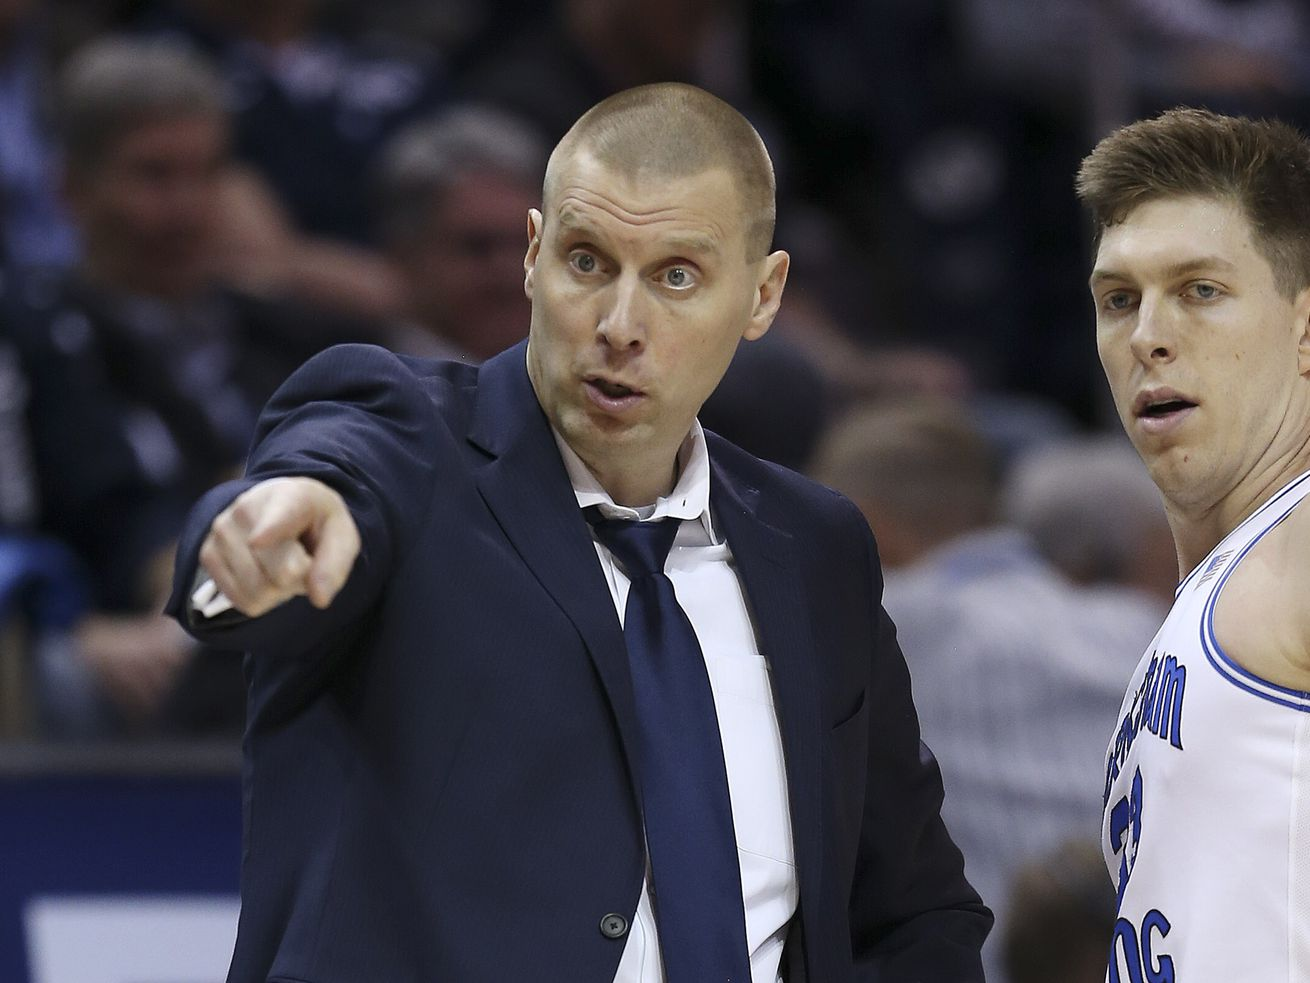 BYU Cougars head coach Mark Pope instructs in Provo on Saturday, Jan. 11, 2020. BYU won 96-70.